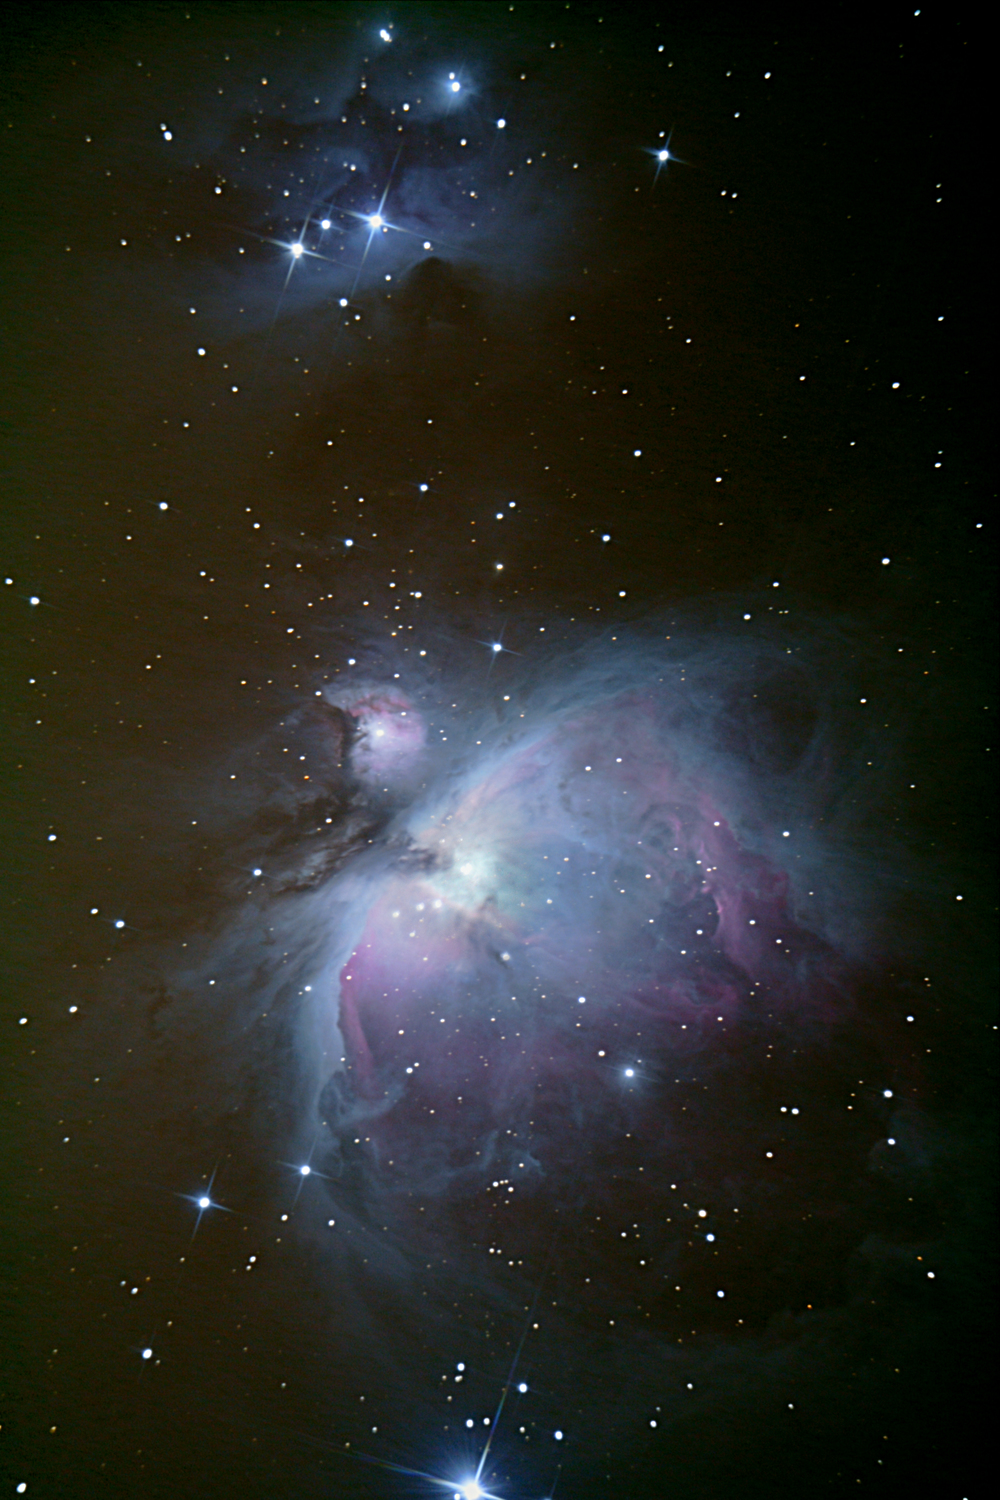 orion nebula definition test.jpg